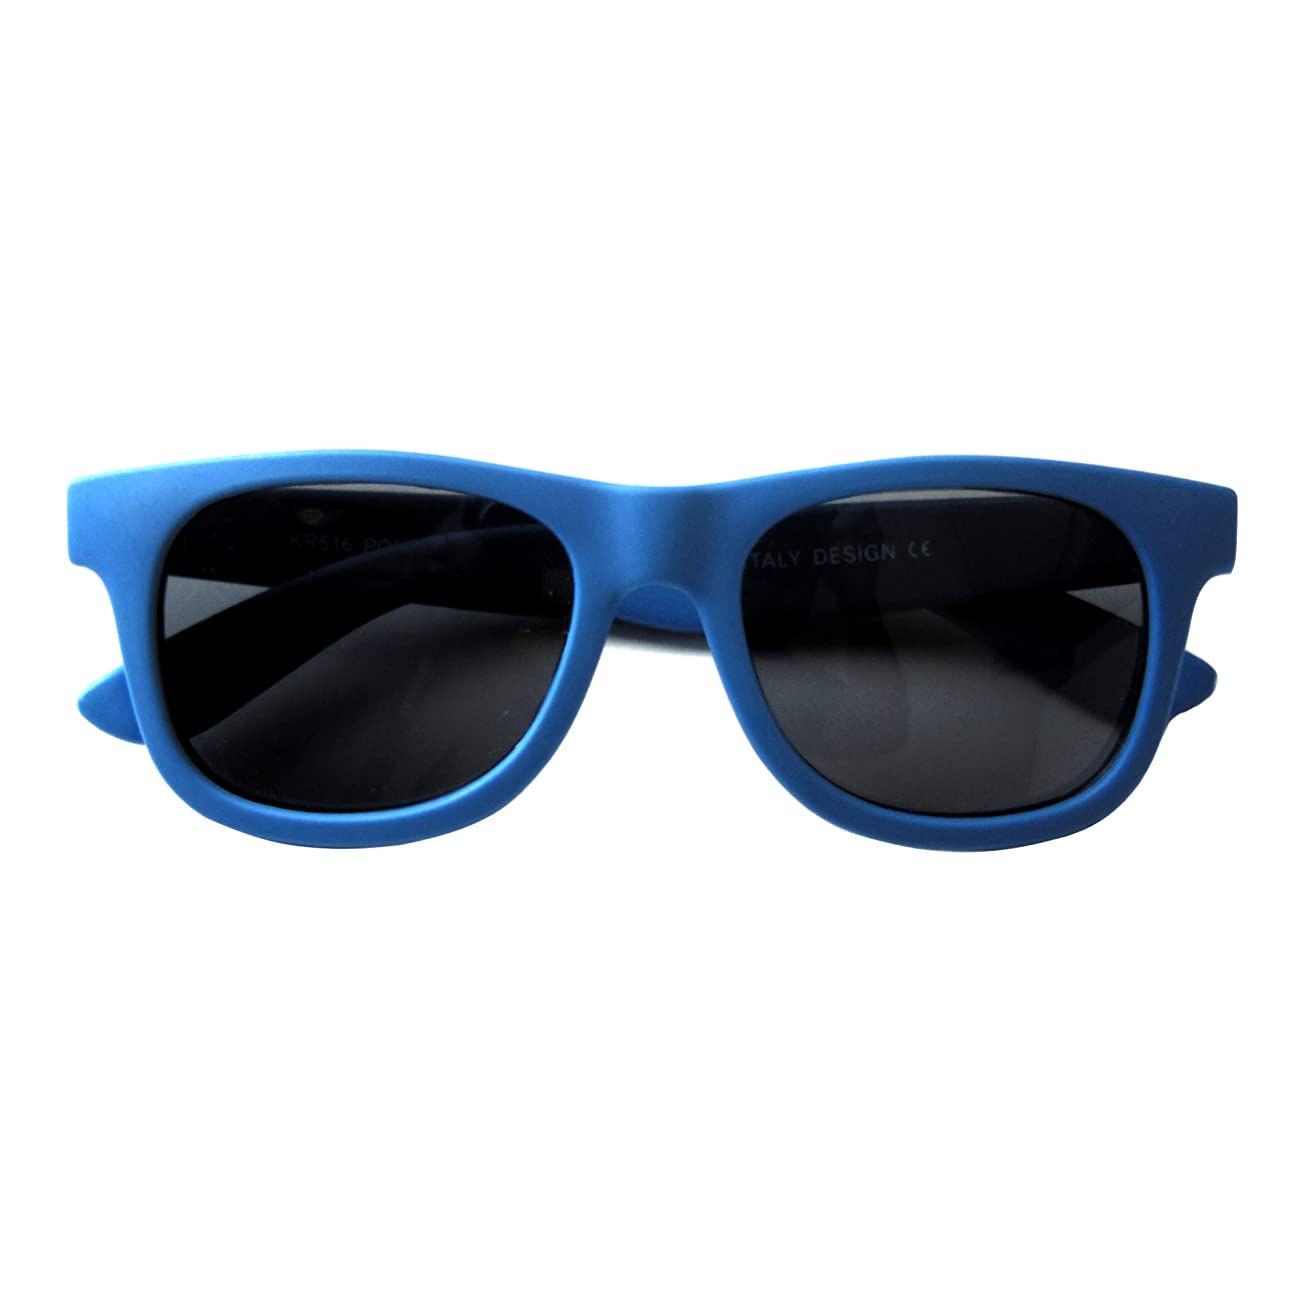 Vintage– Best First Sunglasses for Infant, Baby, Toddler, and Kids. 100% UV Protection. Many Colors and Sizes.